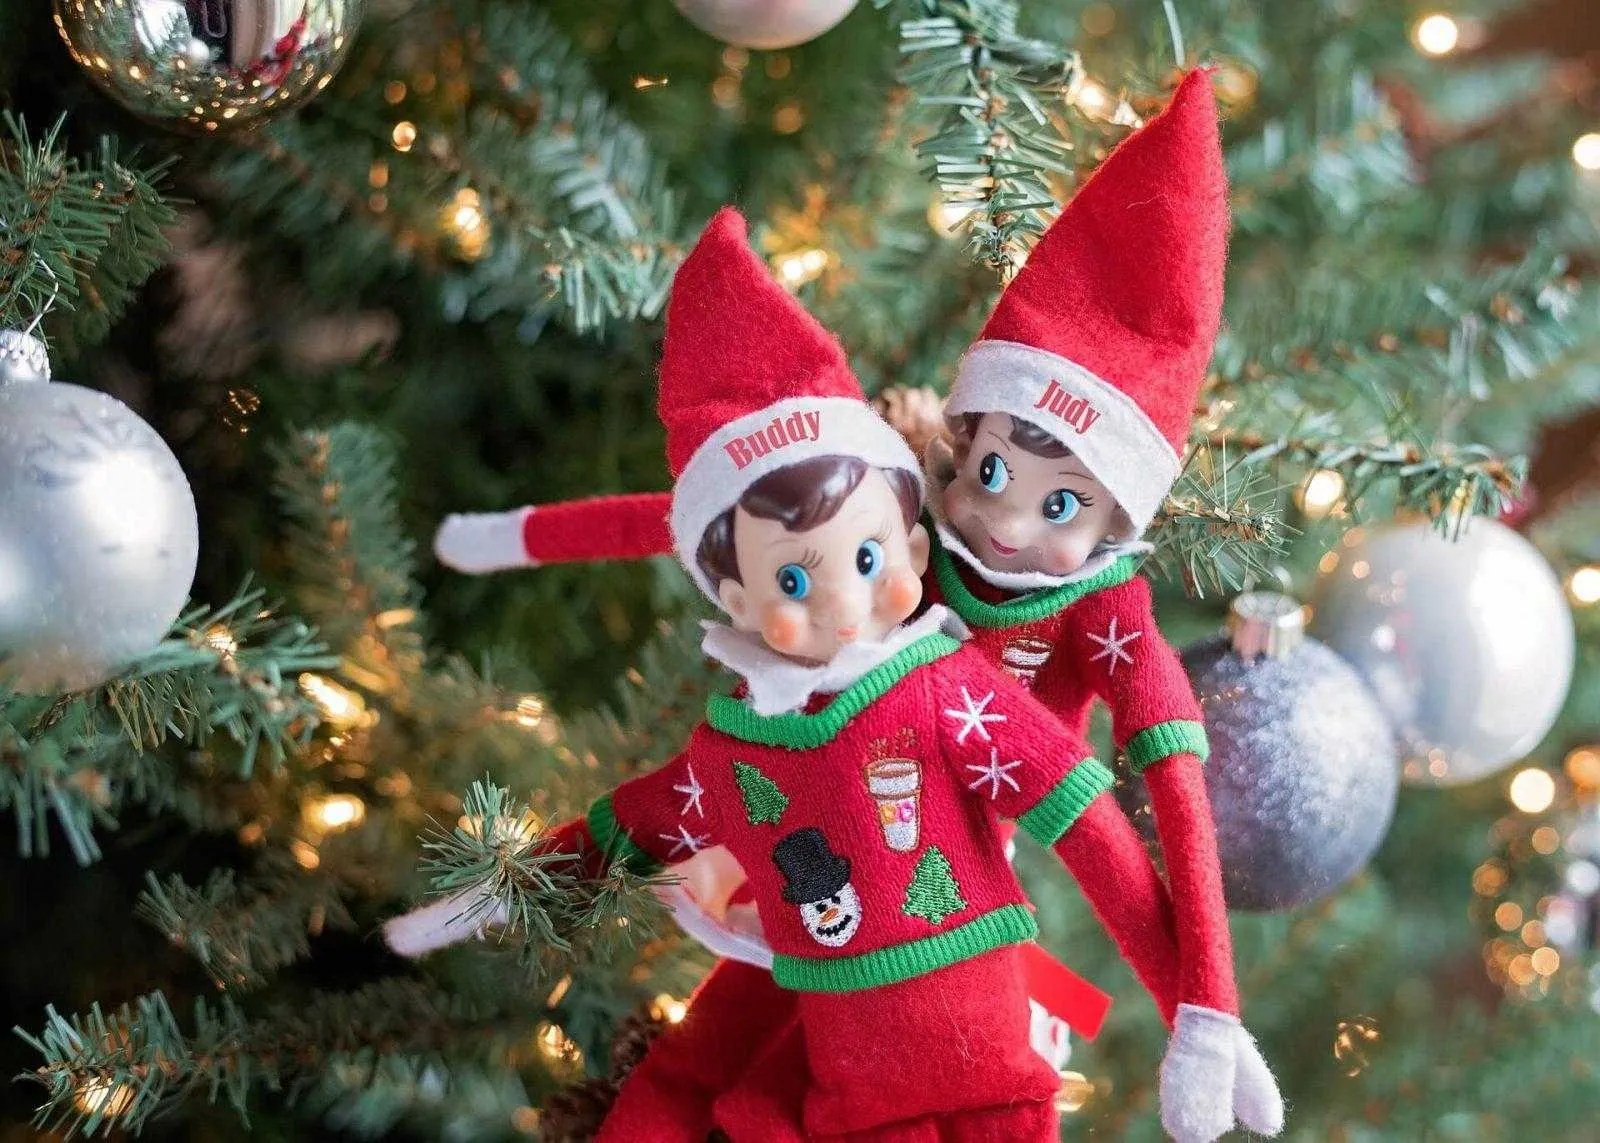 Tradition Weihnachten Elf On The Shelf – Tradition Vor Weihnachten In Den Usa